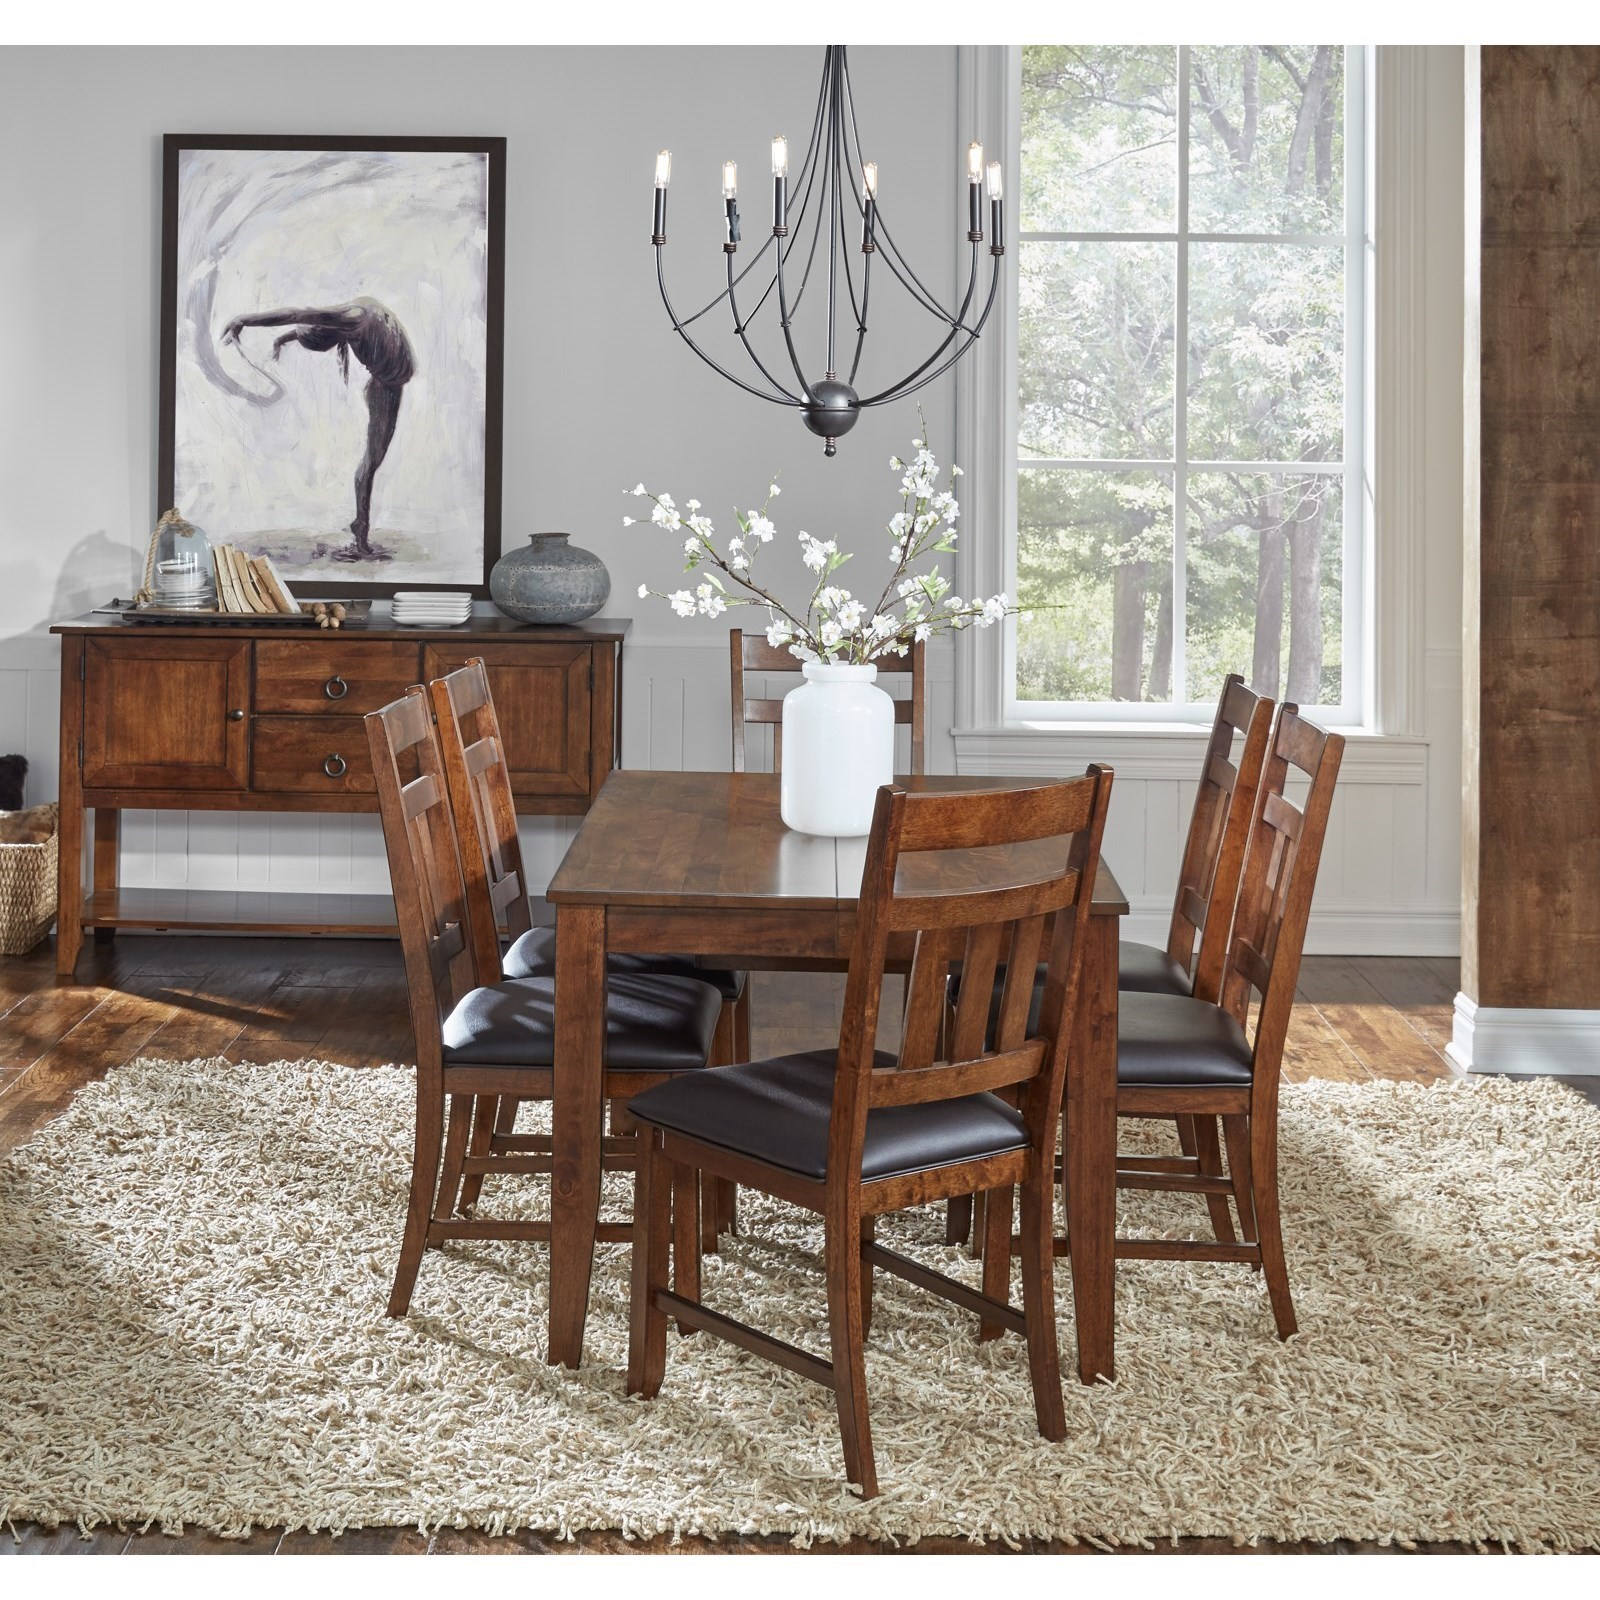 AAmerica Mason 7 Piece Square Butterfly Table and Chair